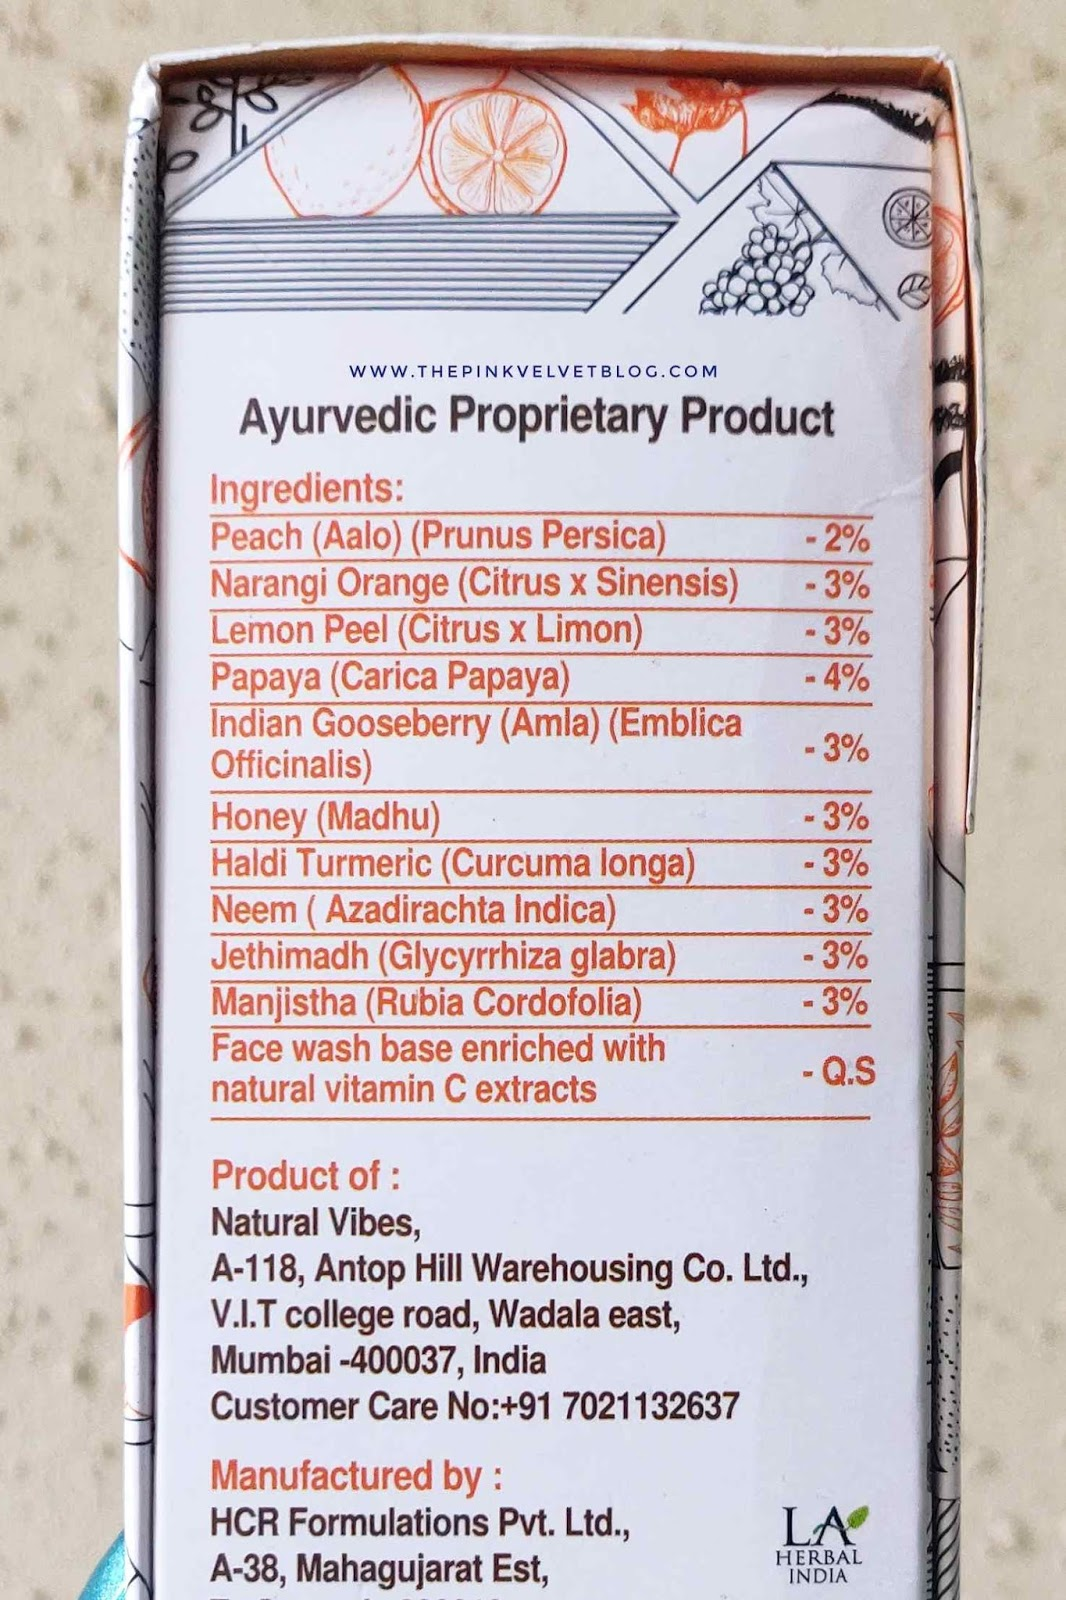 Natural Vibes Brightening Vitamin-C Ayurvedic Face Wash - Review - Ingredients